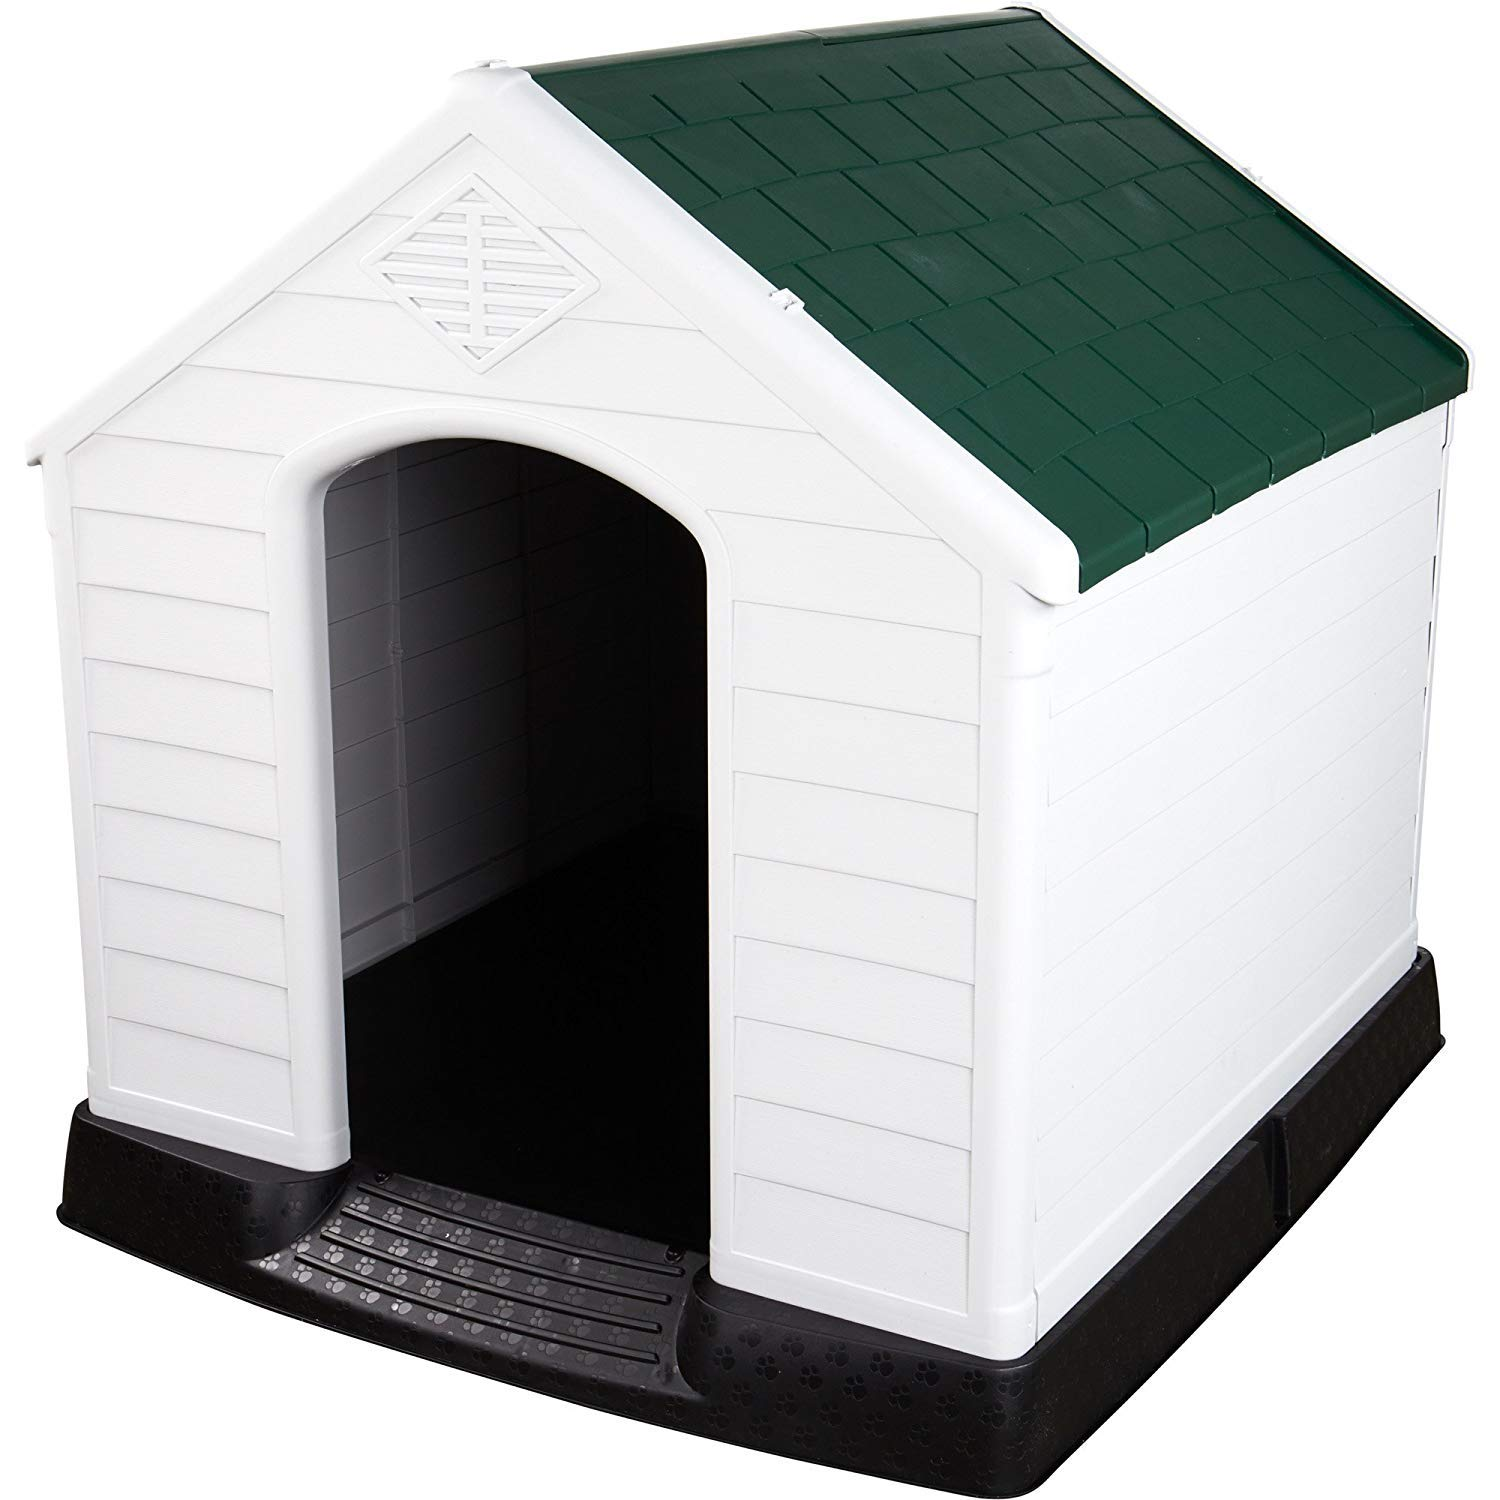 Green Large Green Large Large Dog Kennel,Indoor Outdoor Dog,Kennel,Windproof Dog Kennel,Keep Your Pets Safe Dog House,Shed Home for Dogs,Big Dog Small Dog,Cat House,Feeding Kennel